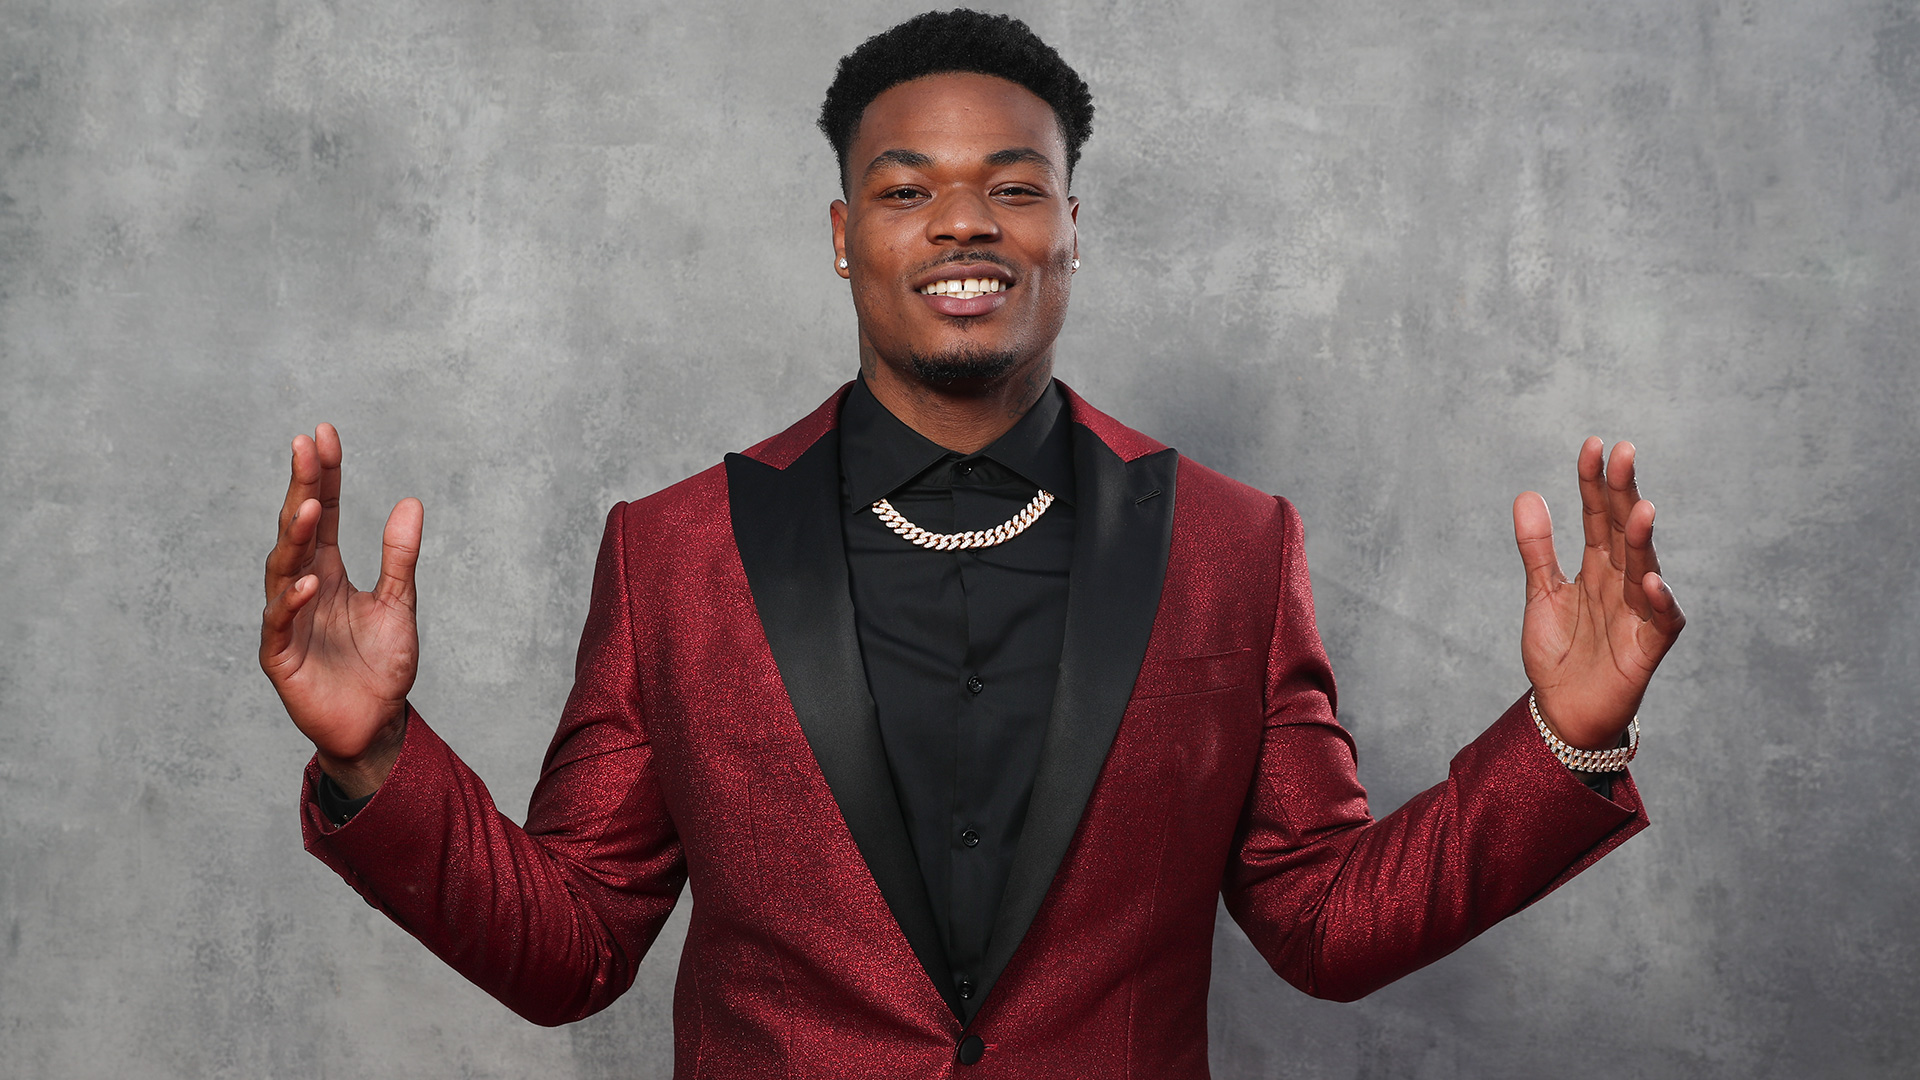 Florida State safety Derwin James on the red carpet during the 2018 NFL Draft on Thursday, April 26, 2018 in Arlington, Texas. (Ben Liebenberg via AP)